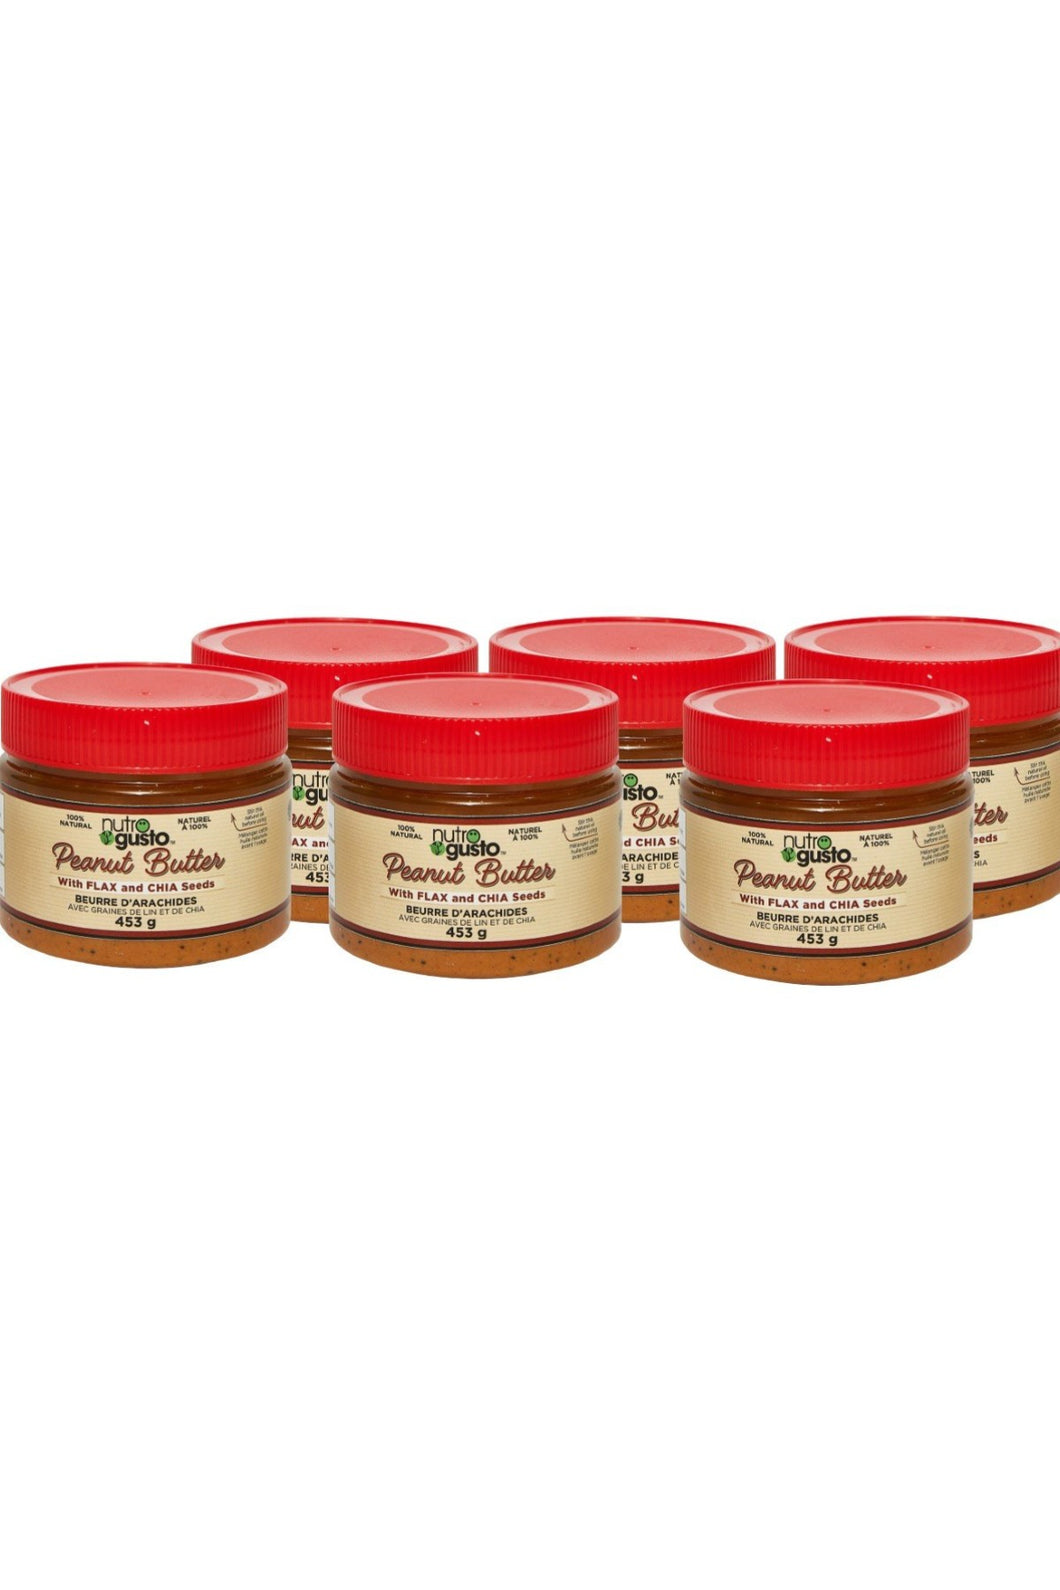 NutroGusto Natural Peanut Butter with Flax and Chia 454g - 6 Pack